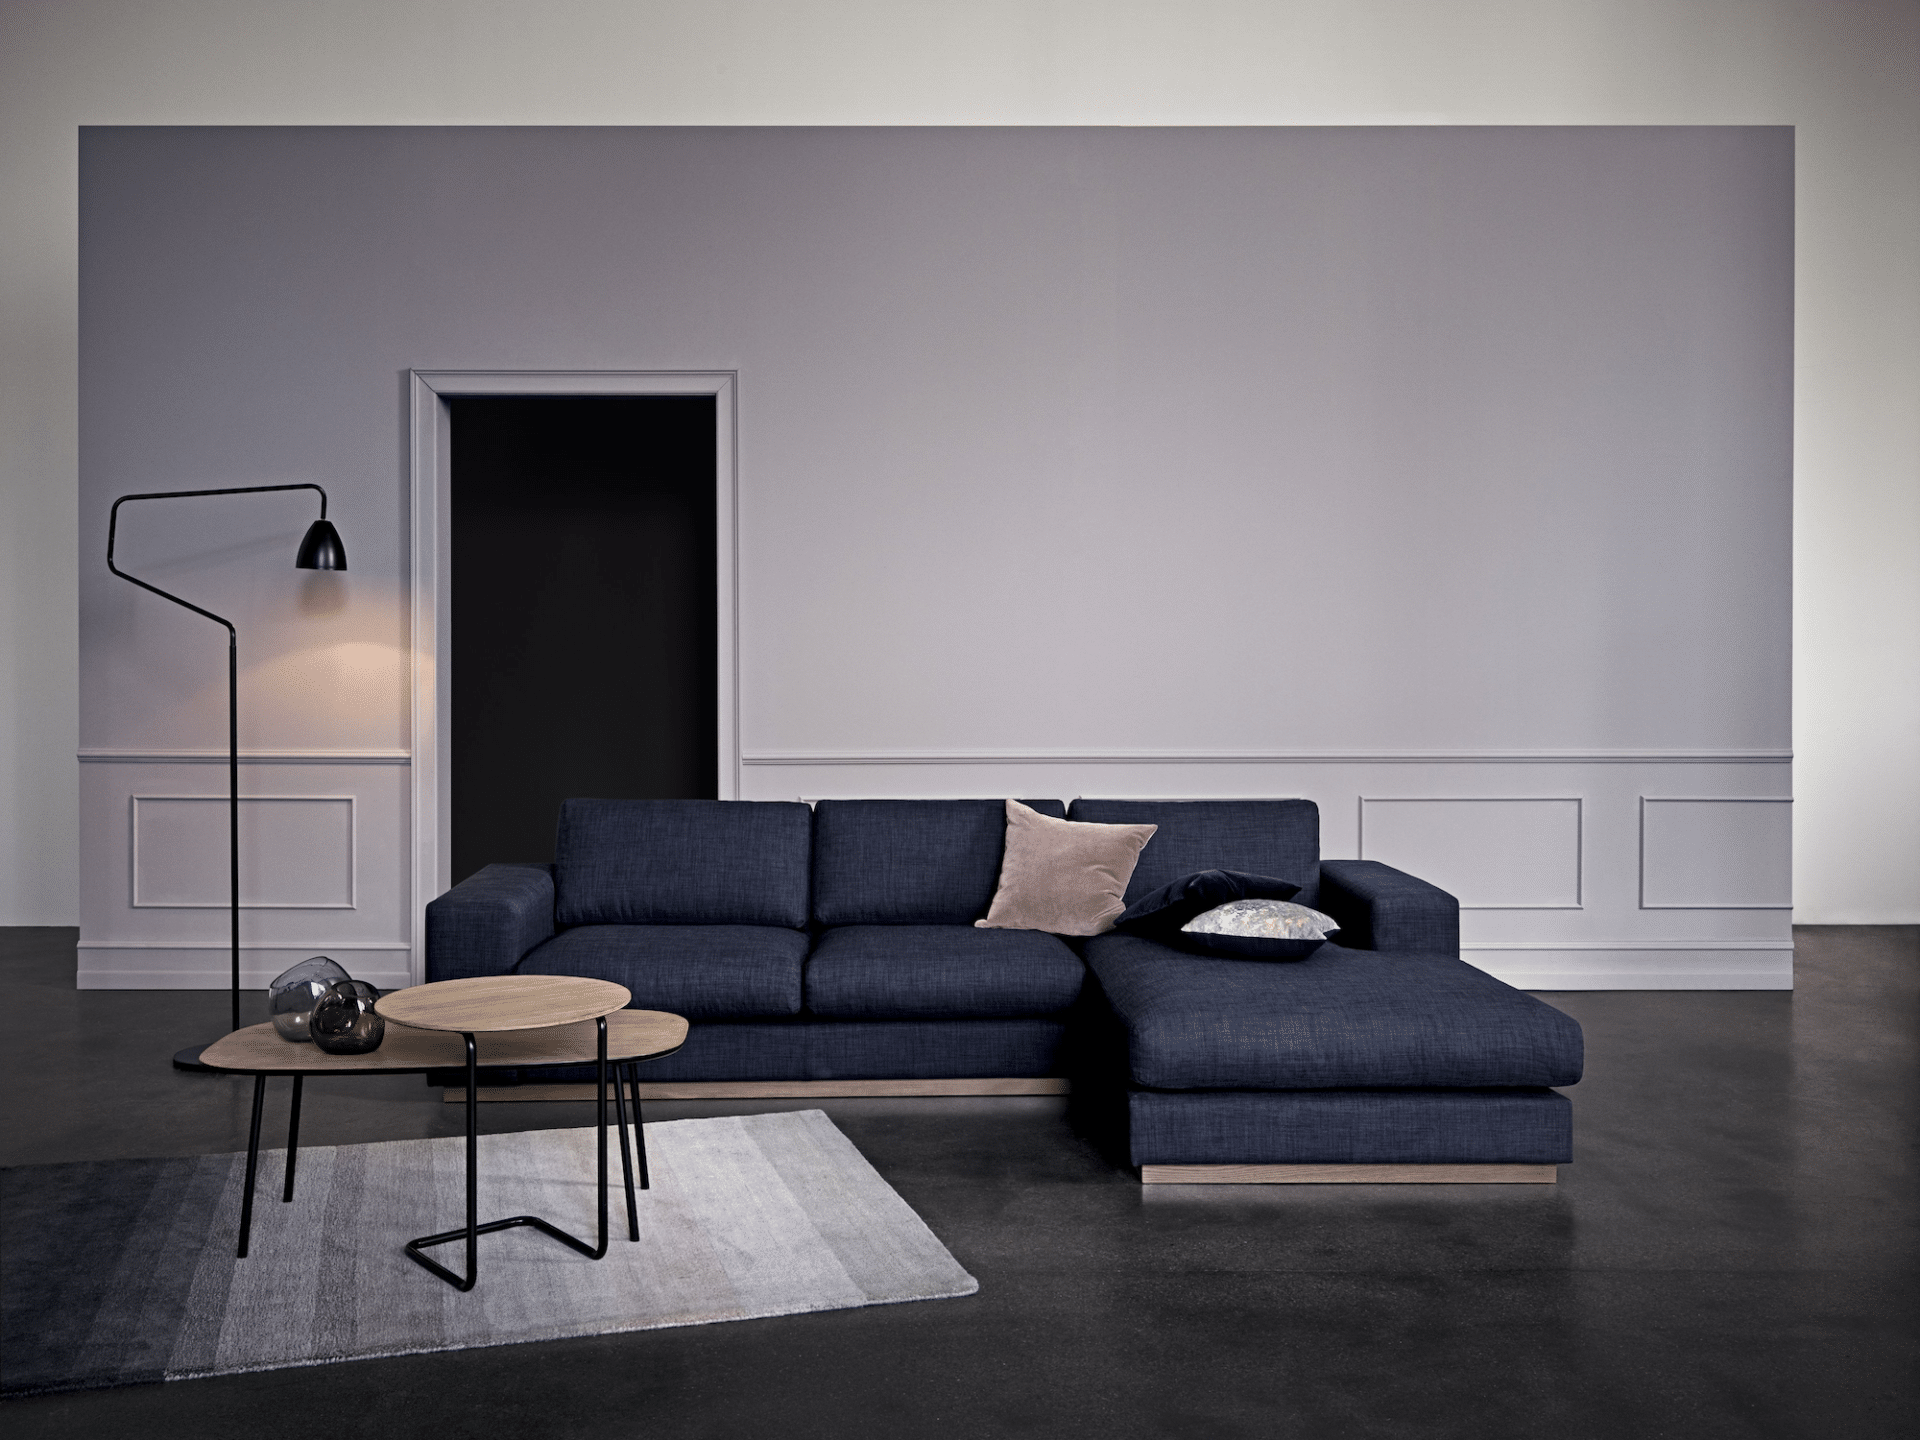 Introducing Bolia: New Scandinavian Design | Industrial style, Mid ...